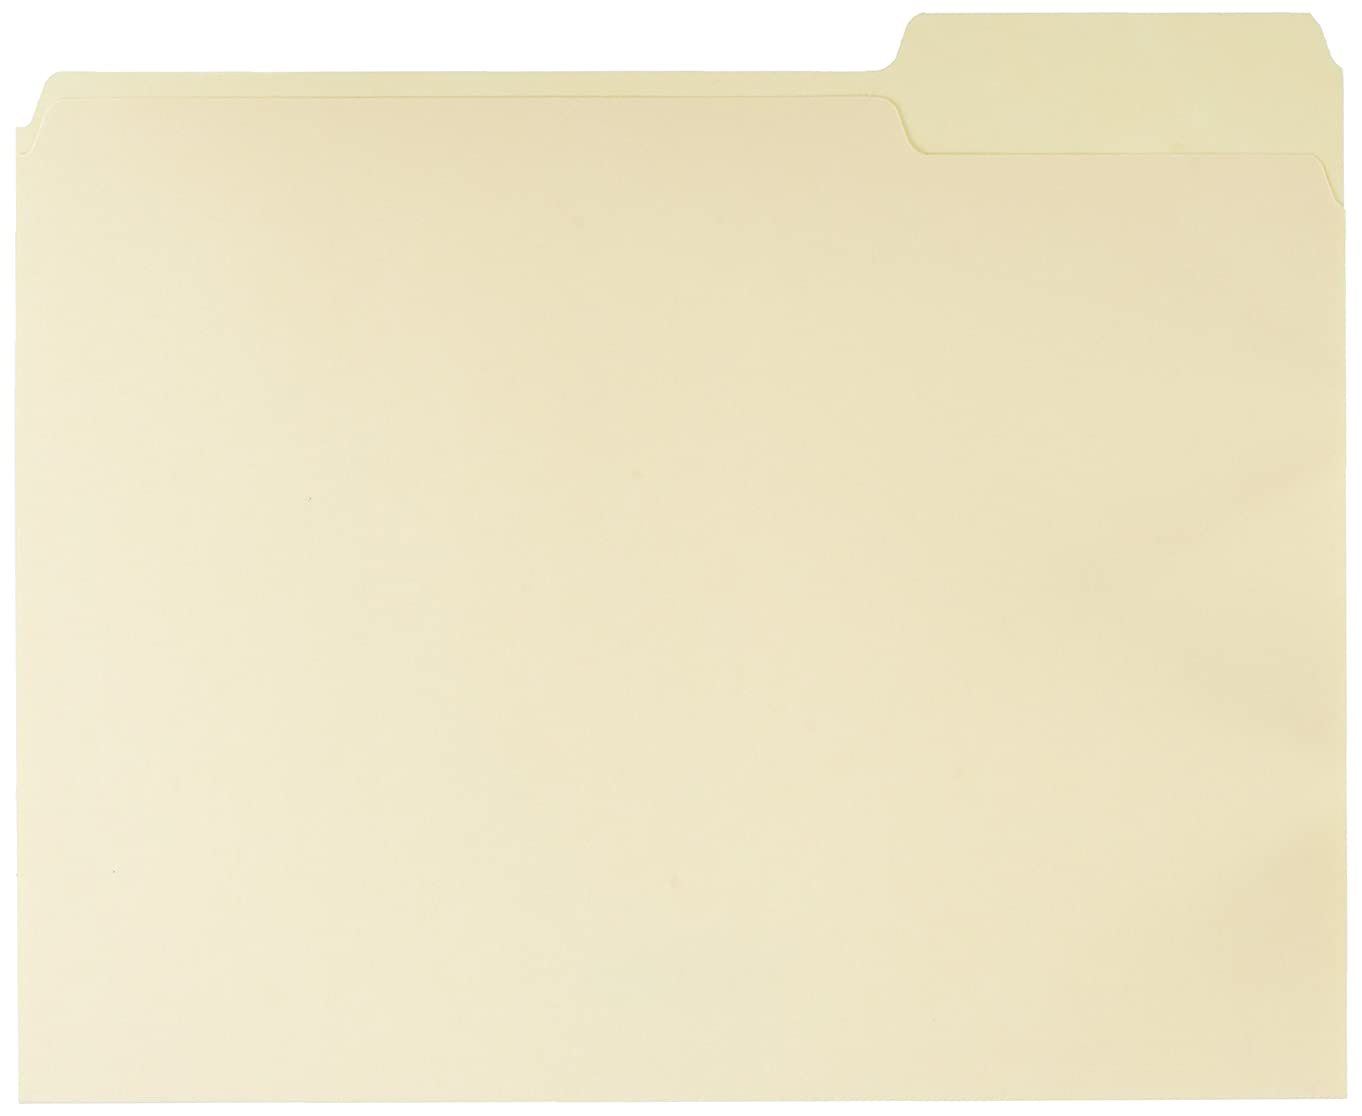 AmazonBasics File Folders with Reinforced Tab - Letter Size (100 Pack) – Manila